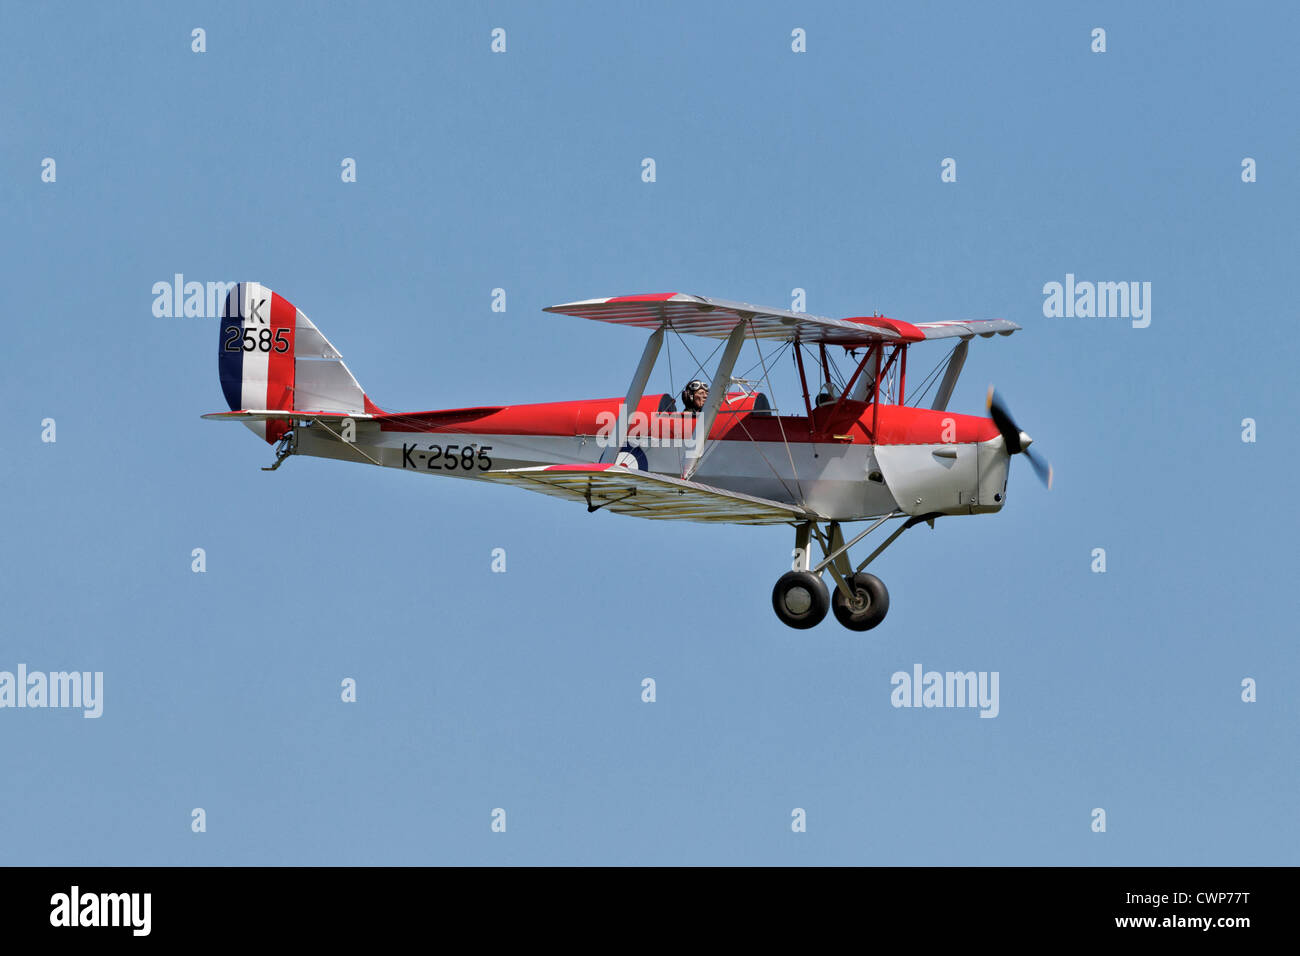 The classic De Havilland DH82 Tiger Moth vintage biplane - Stock Image